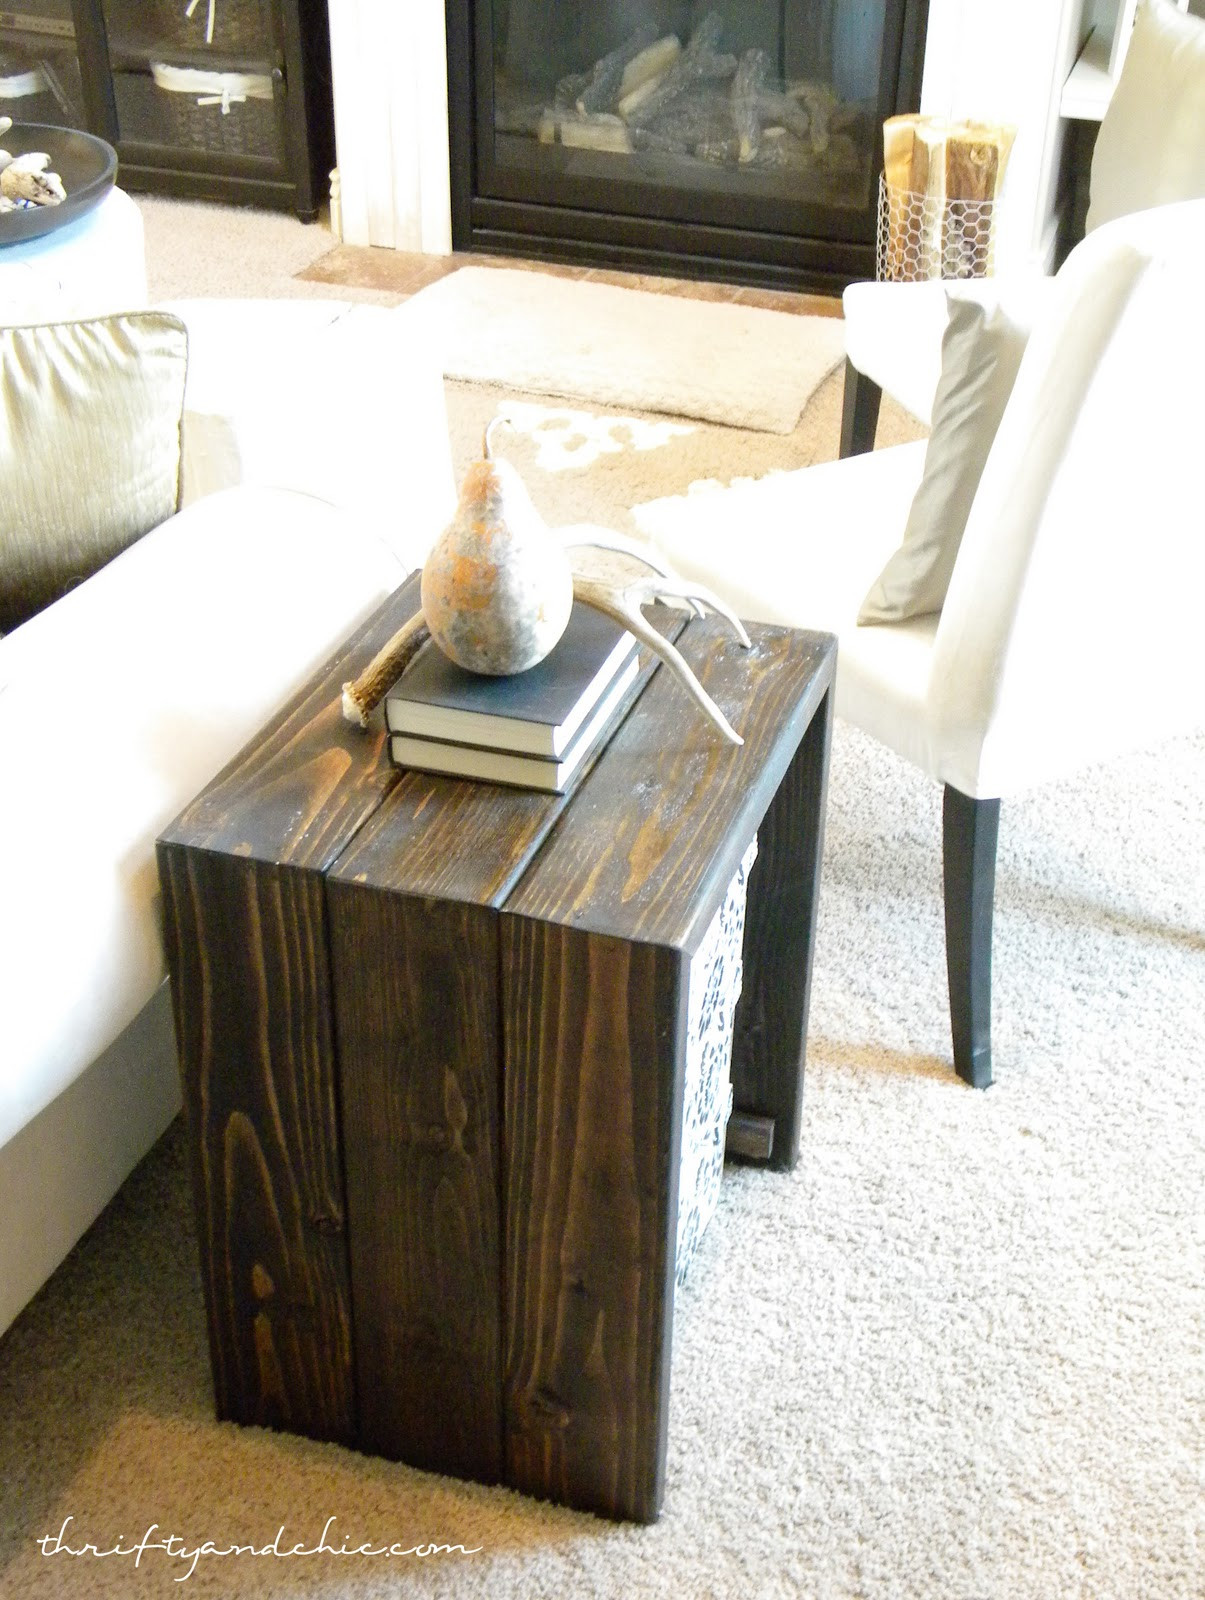 Best ideas about Side Tables DIY . Save or Pin Thrifty and Chic DIY Projects and Home Decor Now.